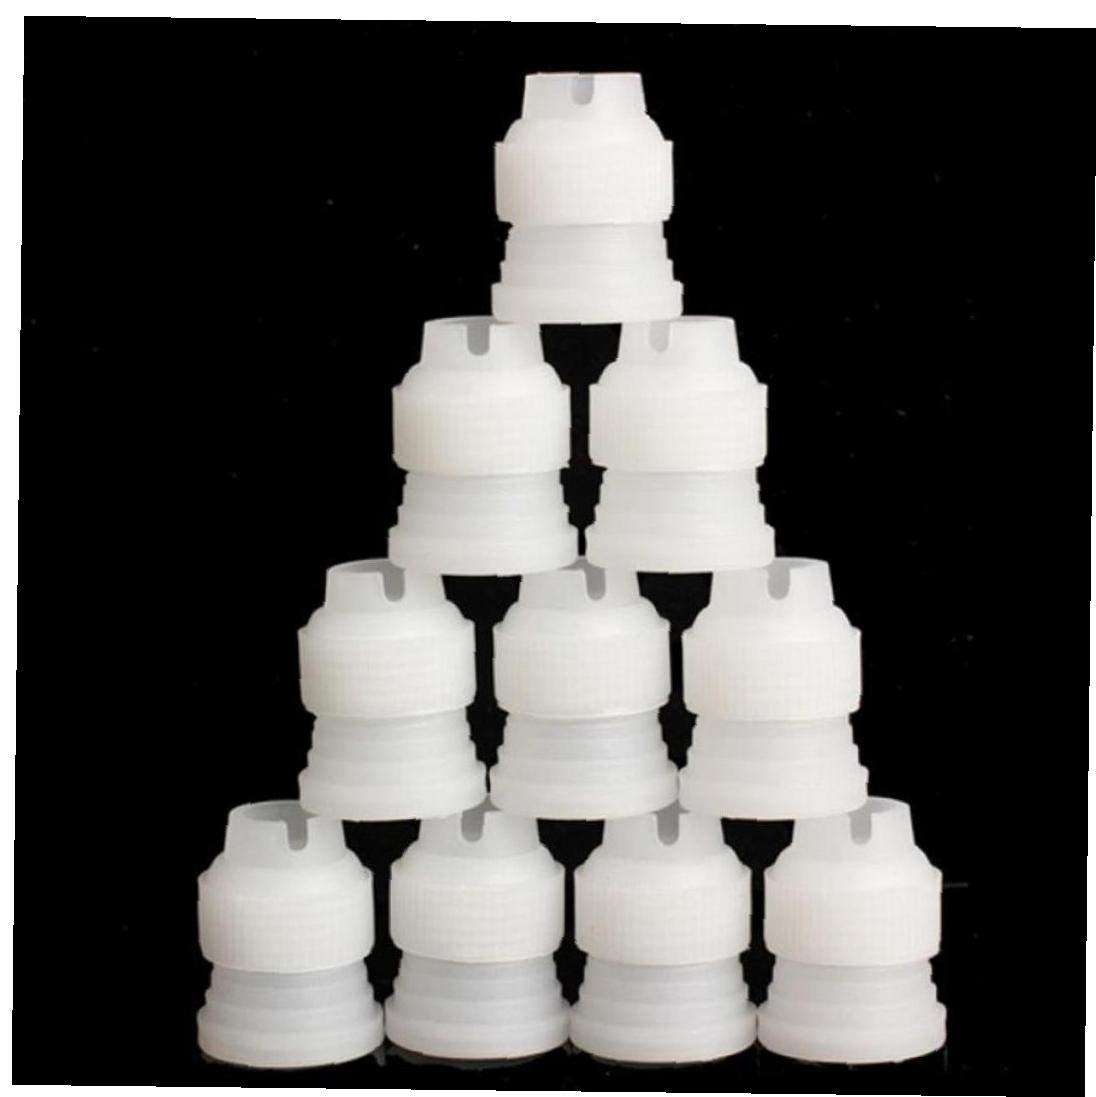 10PCS Small Size Coupler Adaptor Cake Flower Pastry Decoration Tool Icing Piping Nozzle Bag